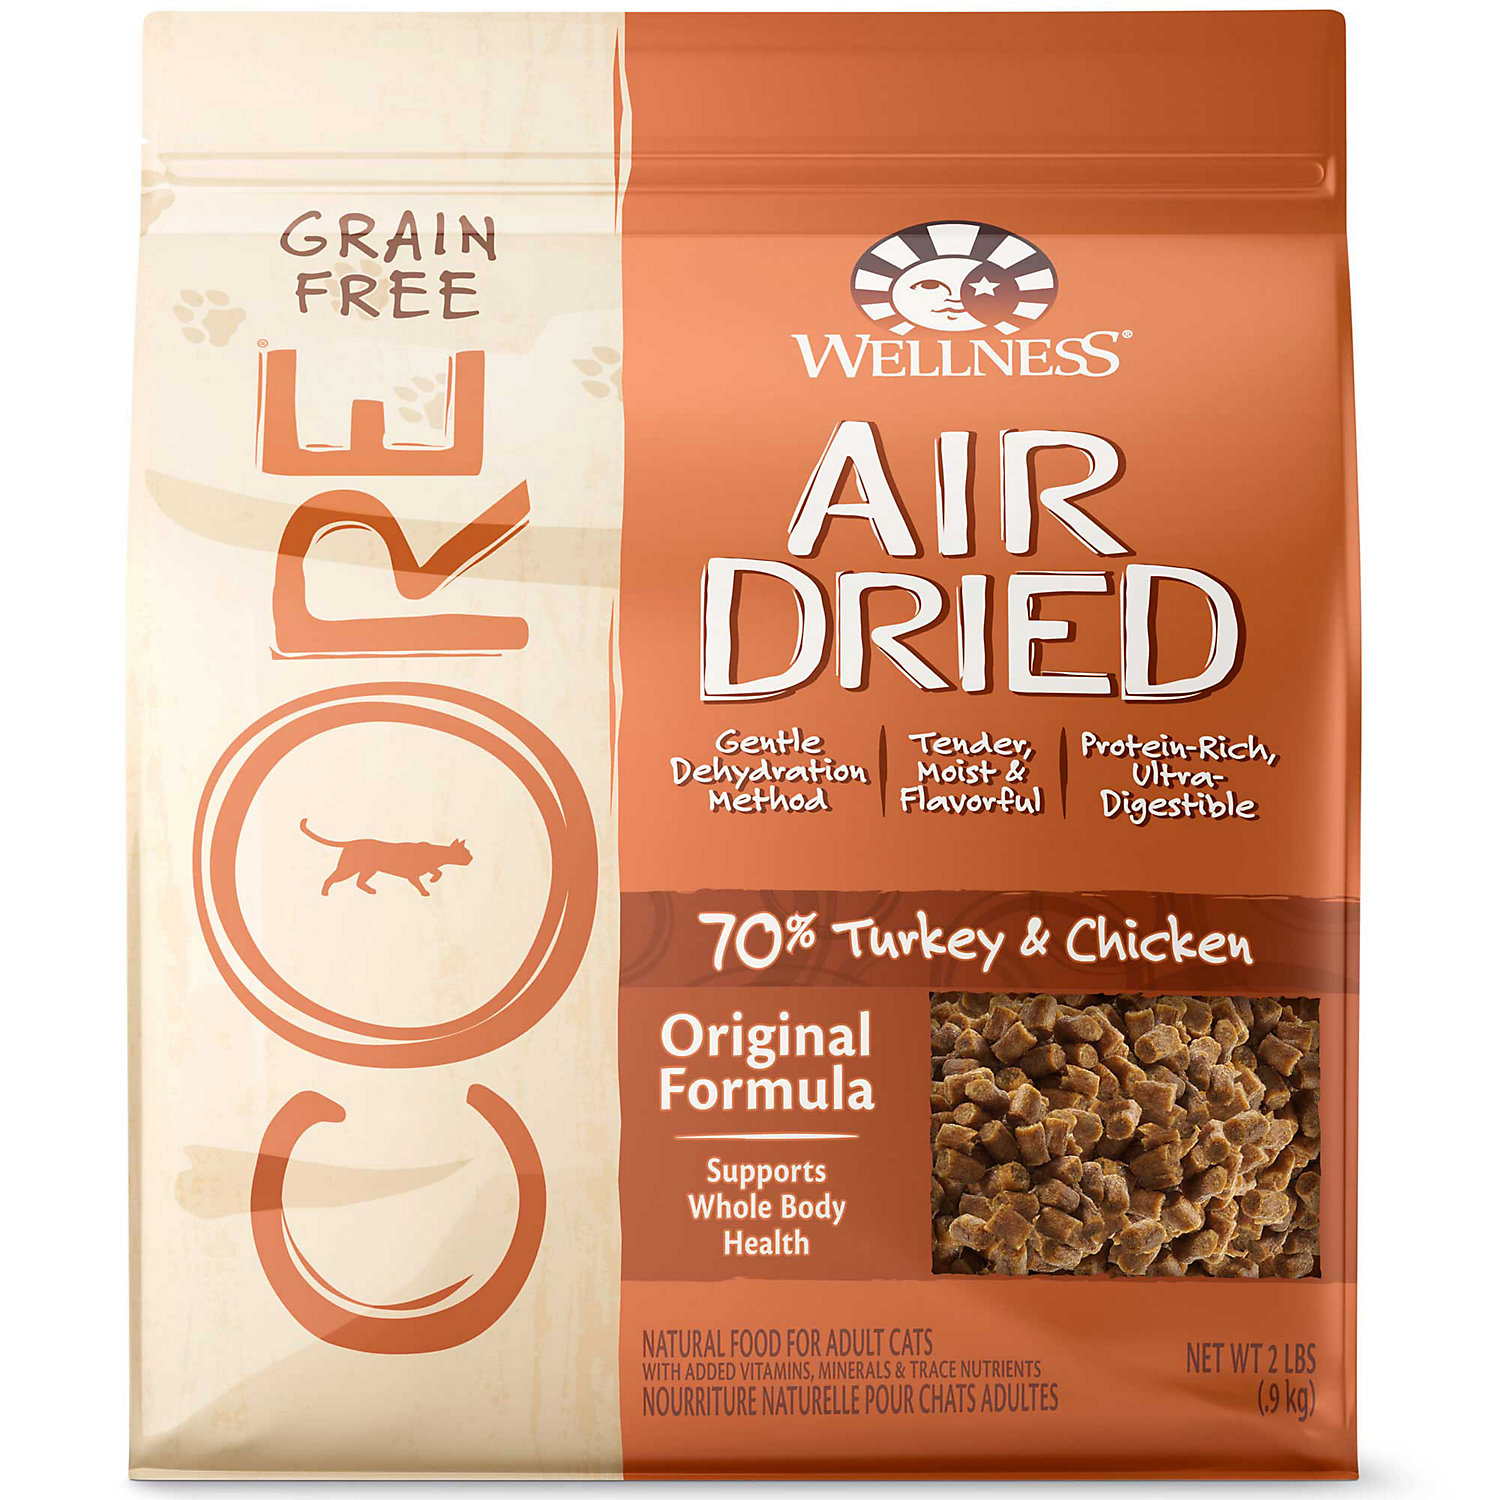 076344885160 Upc Wellness Core Air Dried Turkey